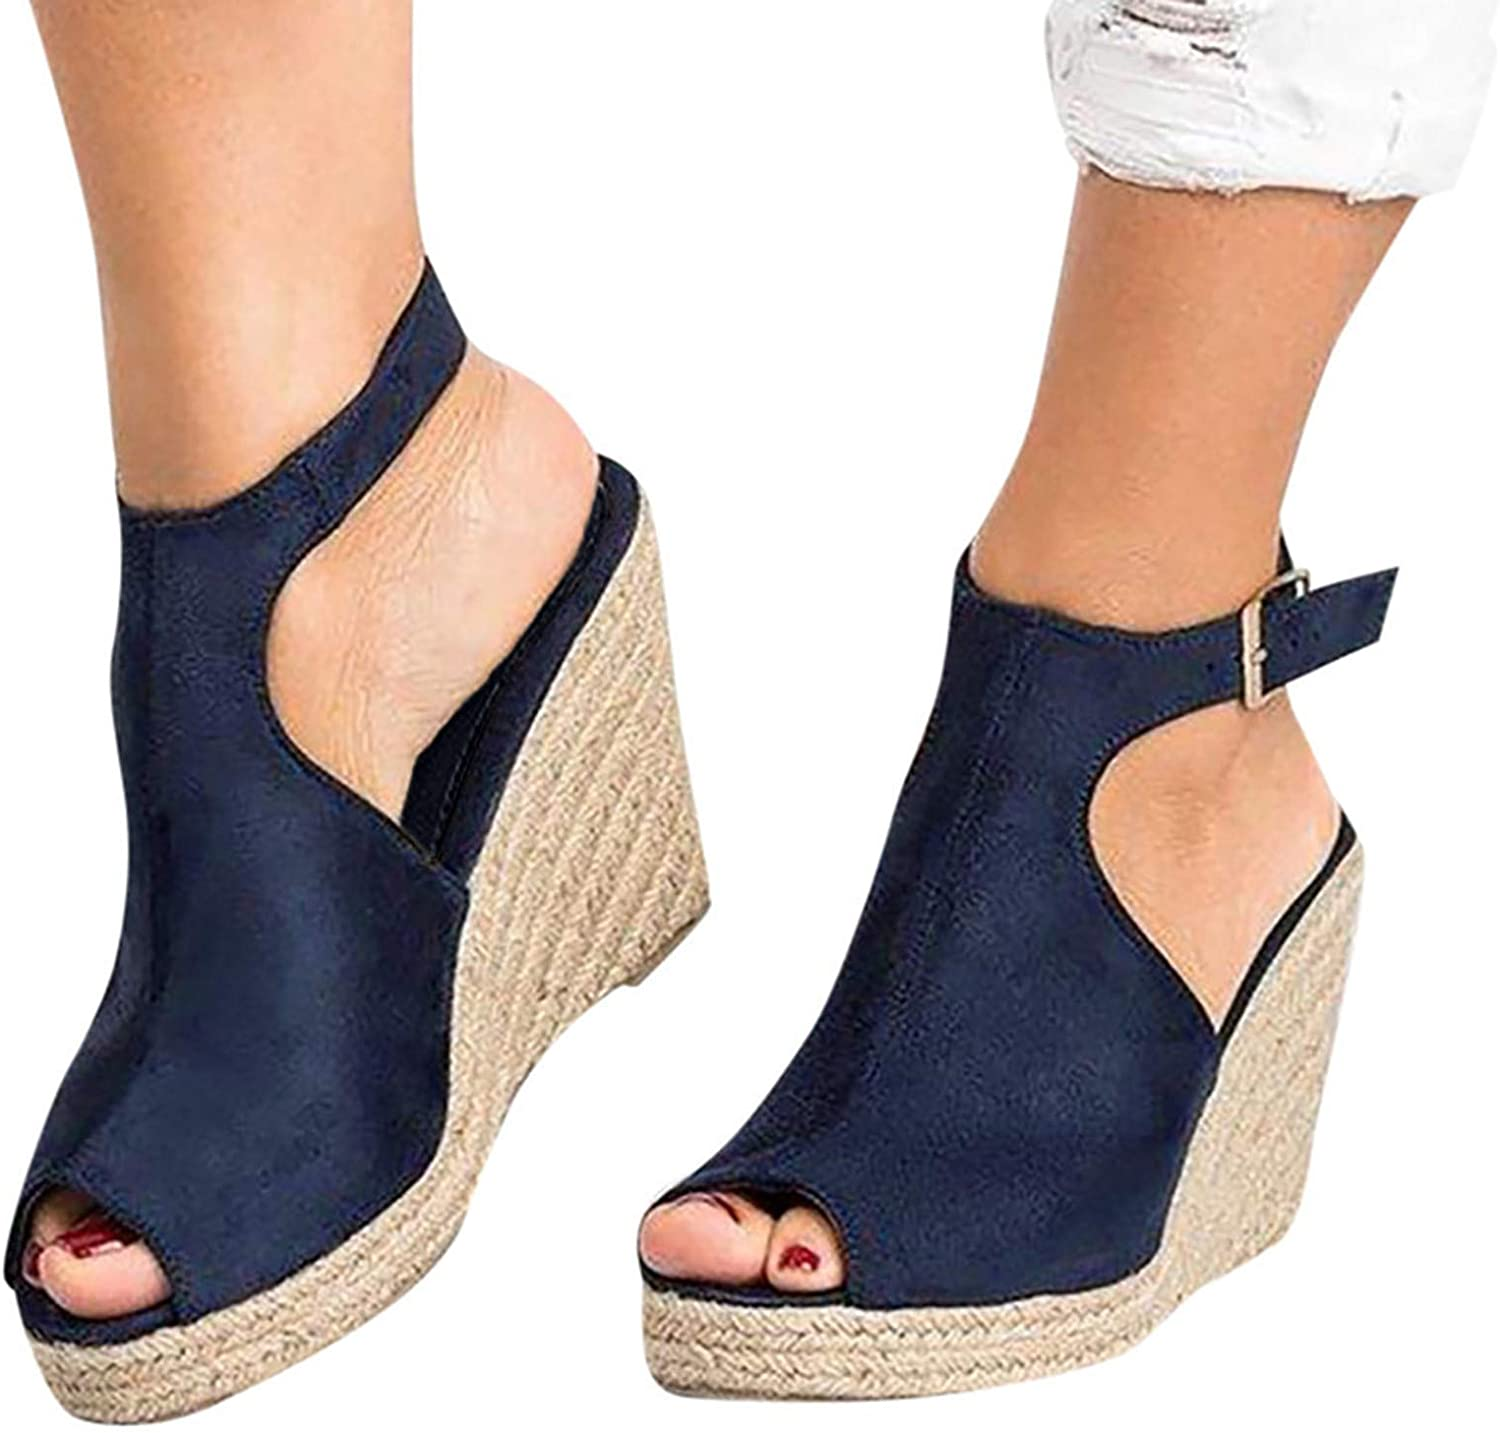 Sandals for Women Casual Summer, Sandals Women Flat Bowknot Ring Clip Toe Fashion Sandals Slippers Beach Shoes